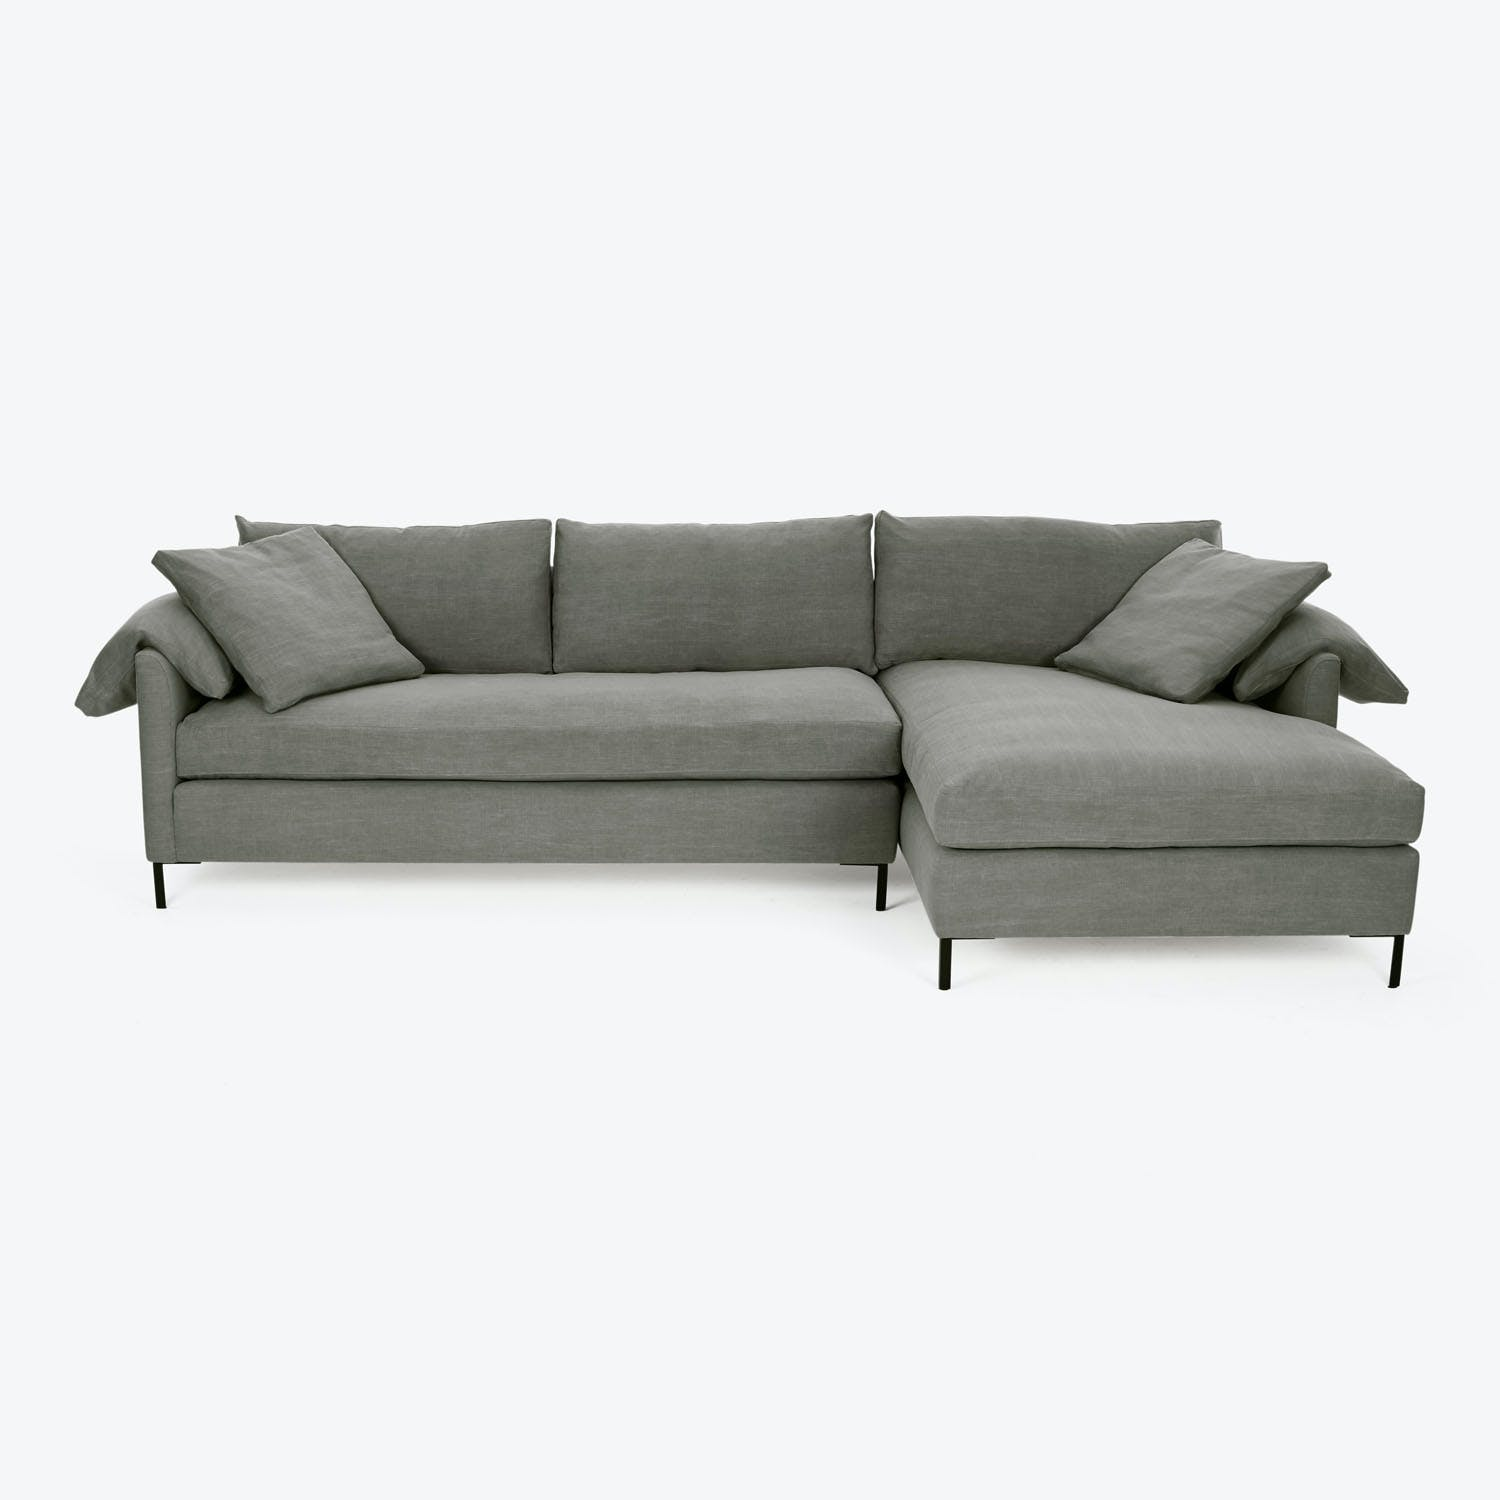 Product Image - Radley Sectional